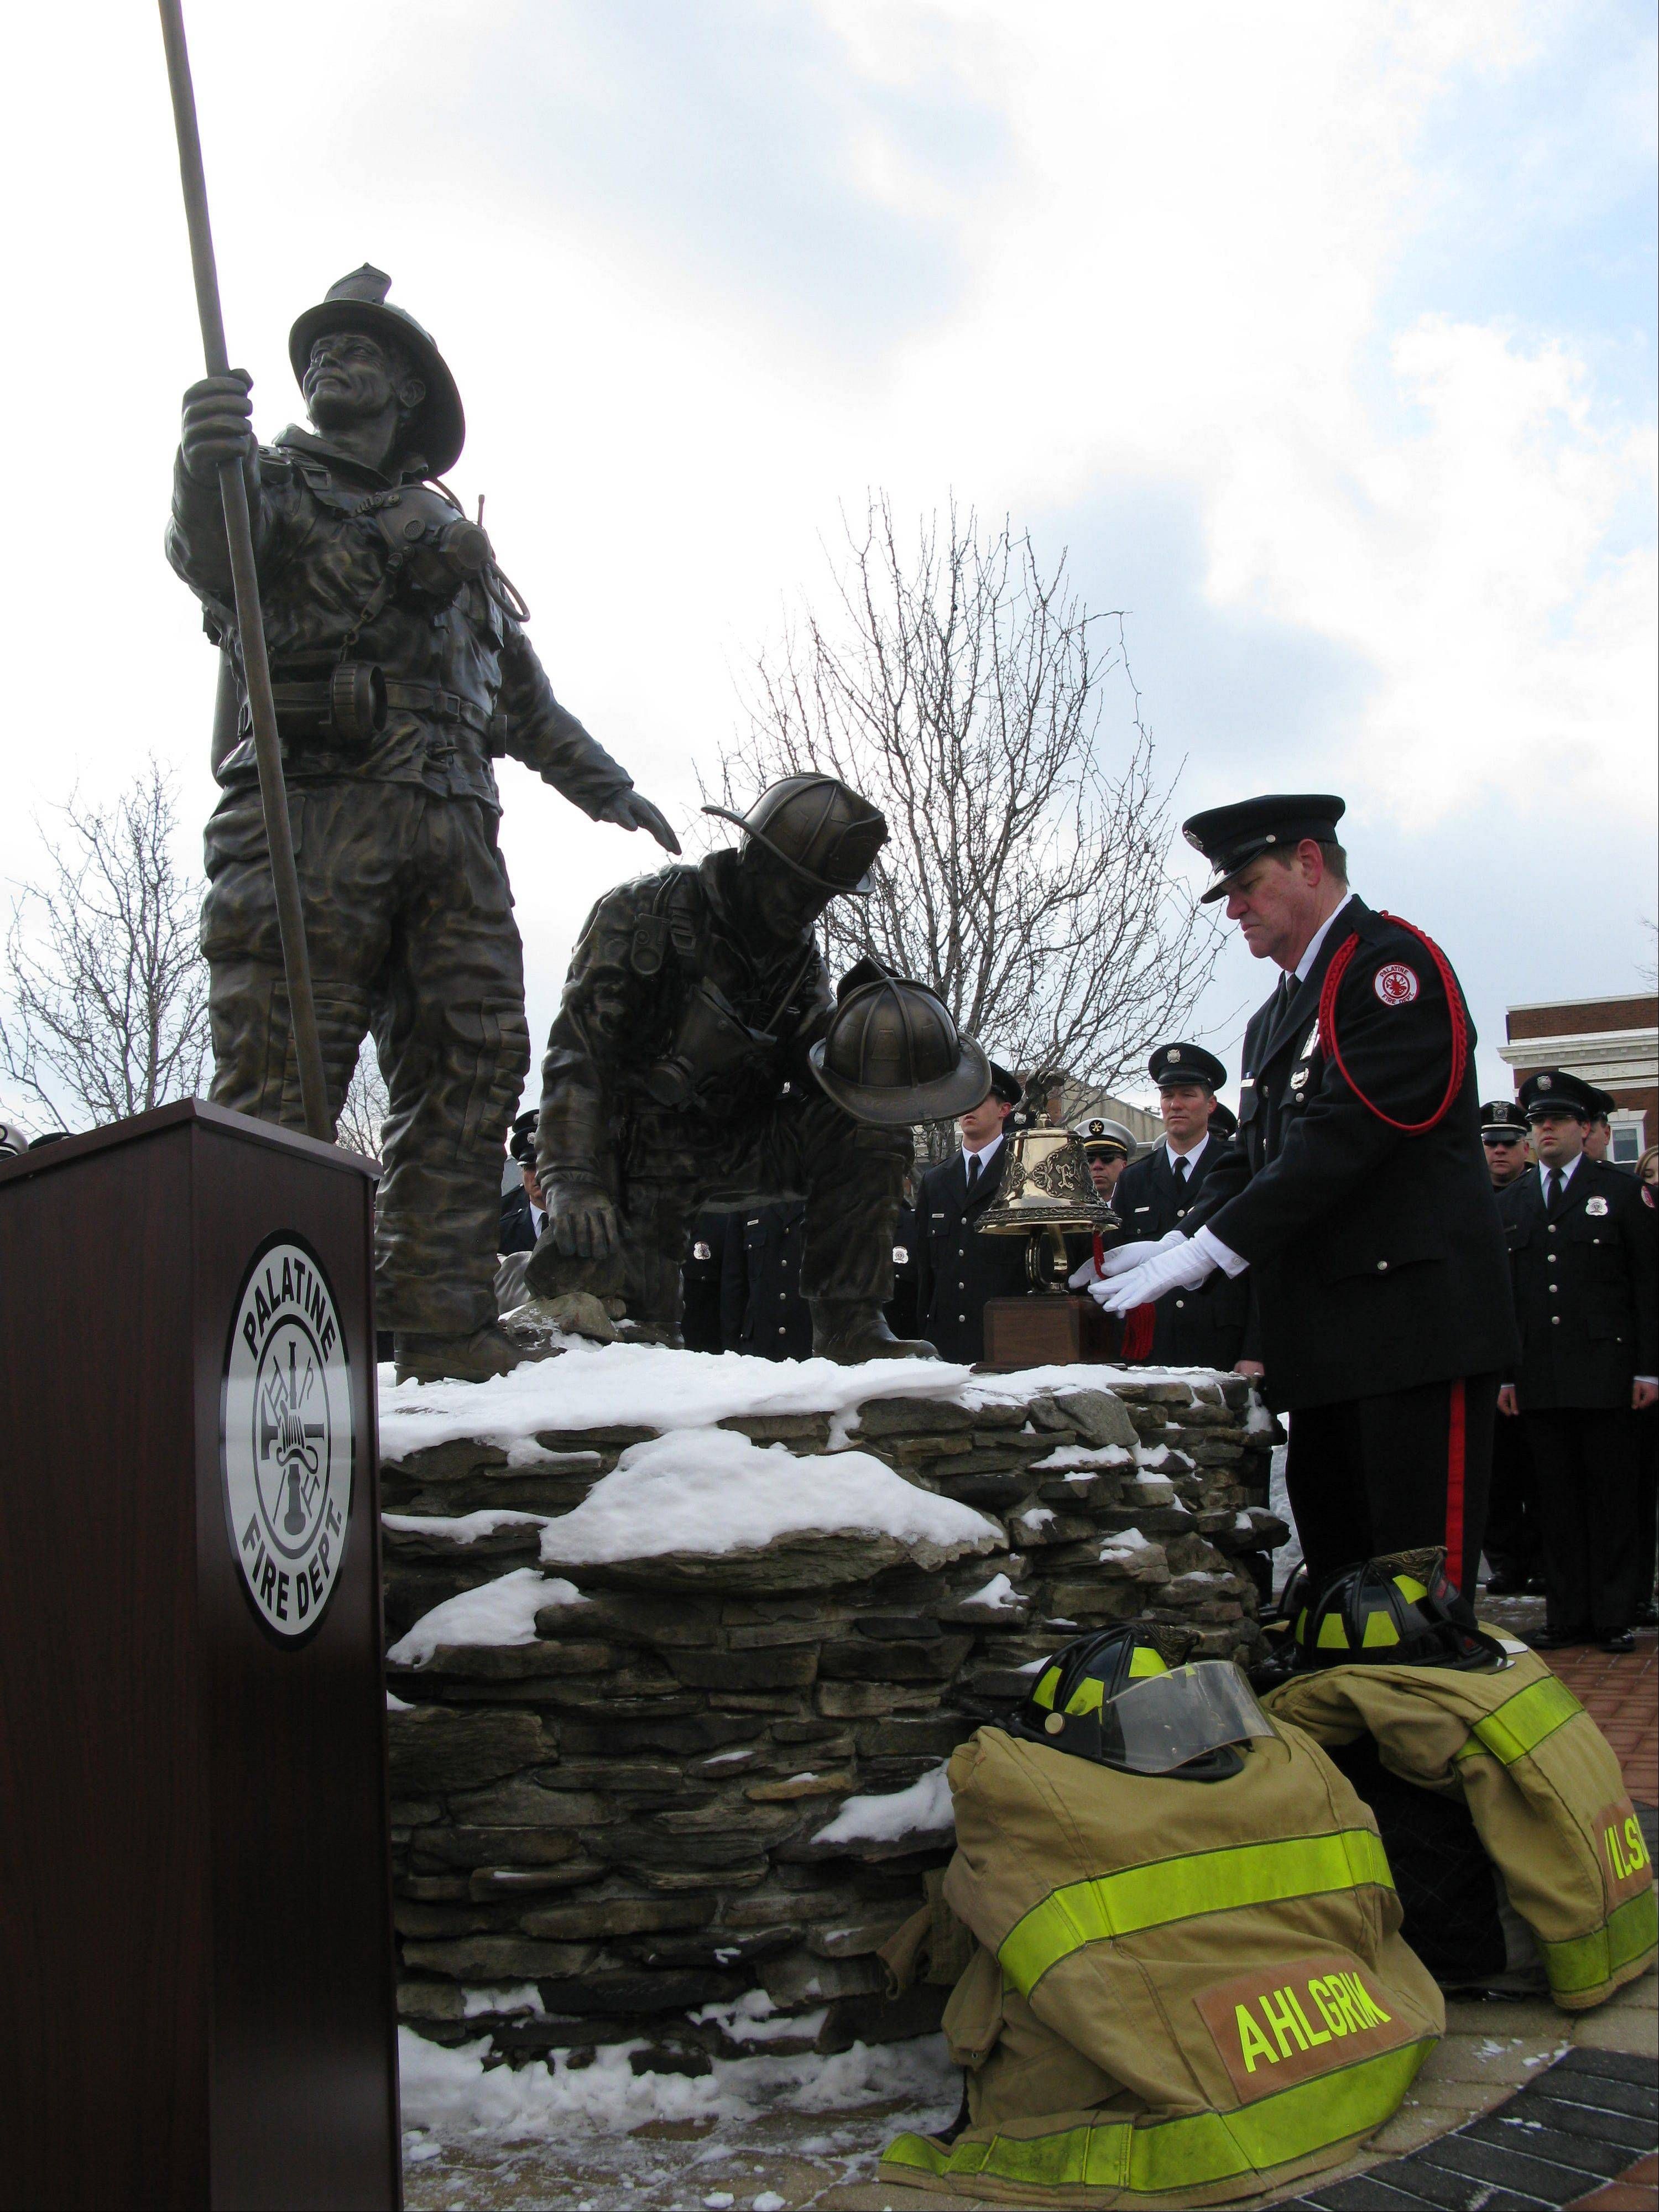 Retired firefighter Mark Hallett sounds the bell three times for each of the fallen volunteer Palatine firefighters, John Wilson, Richard Freeman and Warren Ahlgrim, who perished during a fire rescue on Feb. 23, 1973.